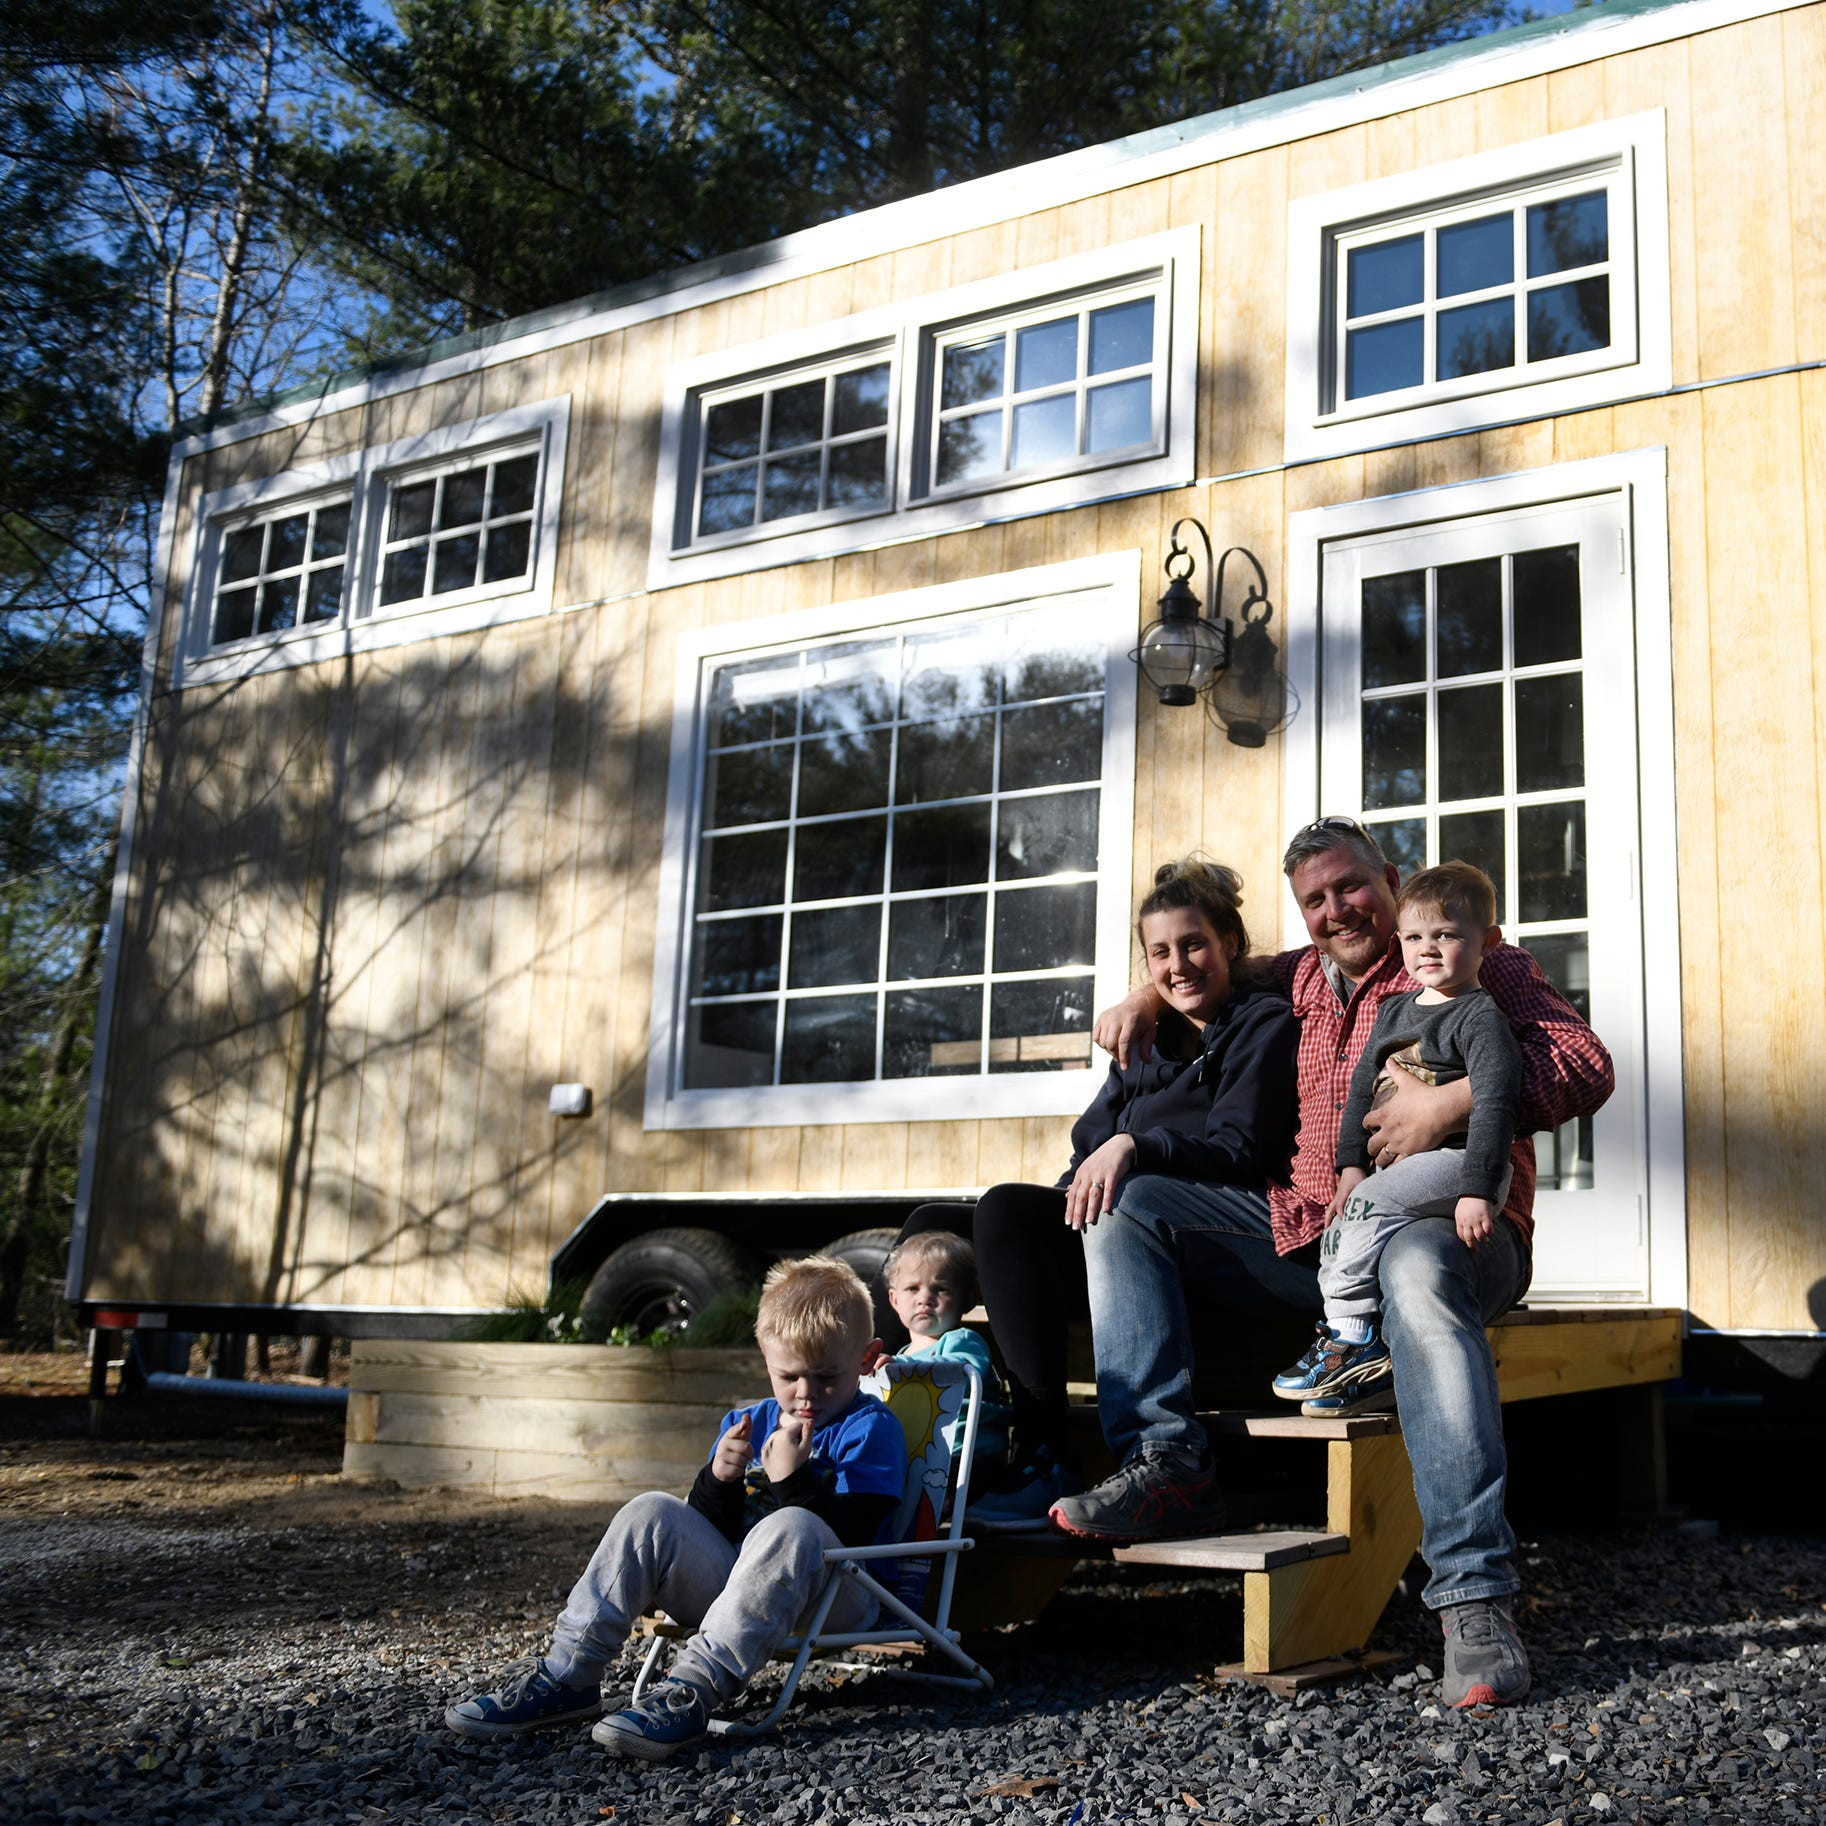 Tiny houses in NJ: These homes could be big solution for expensive housing